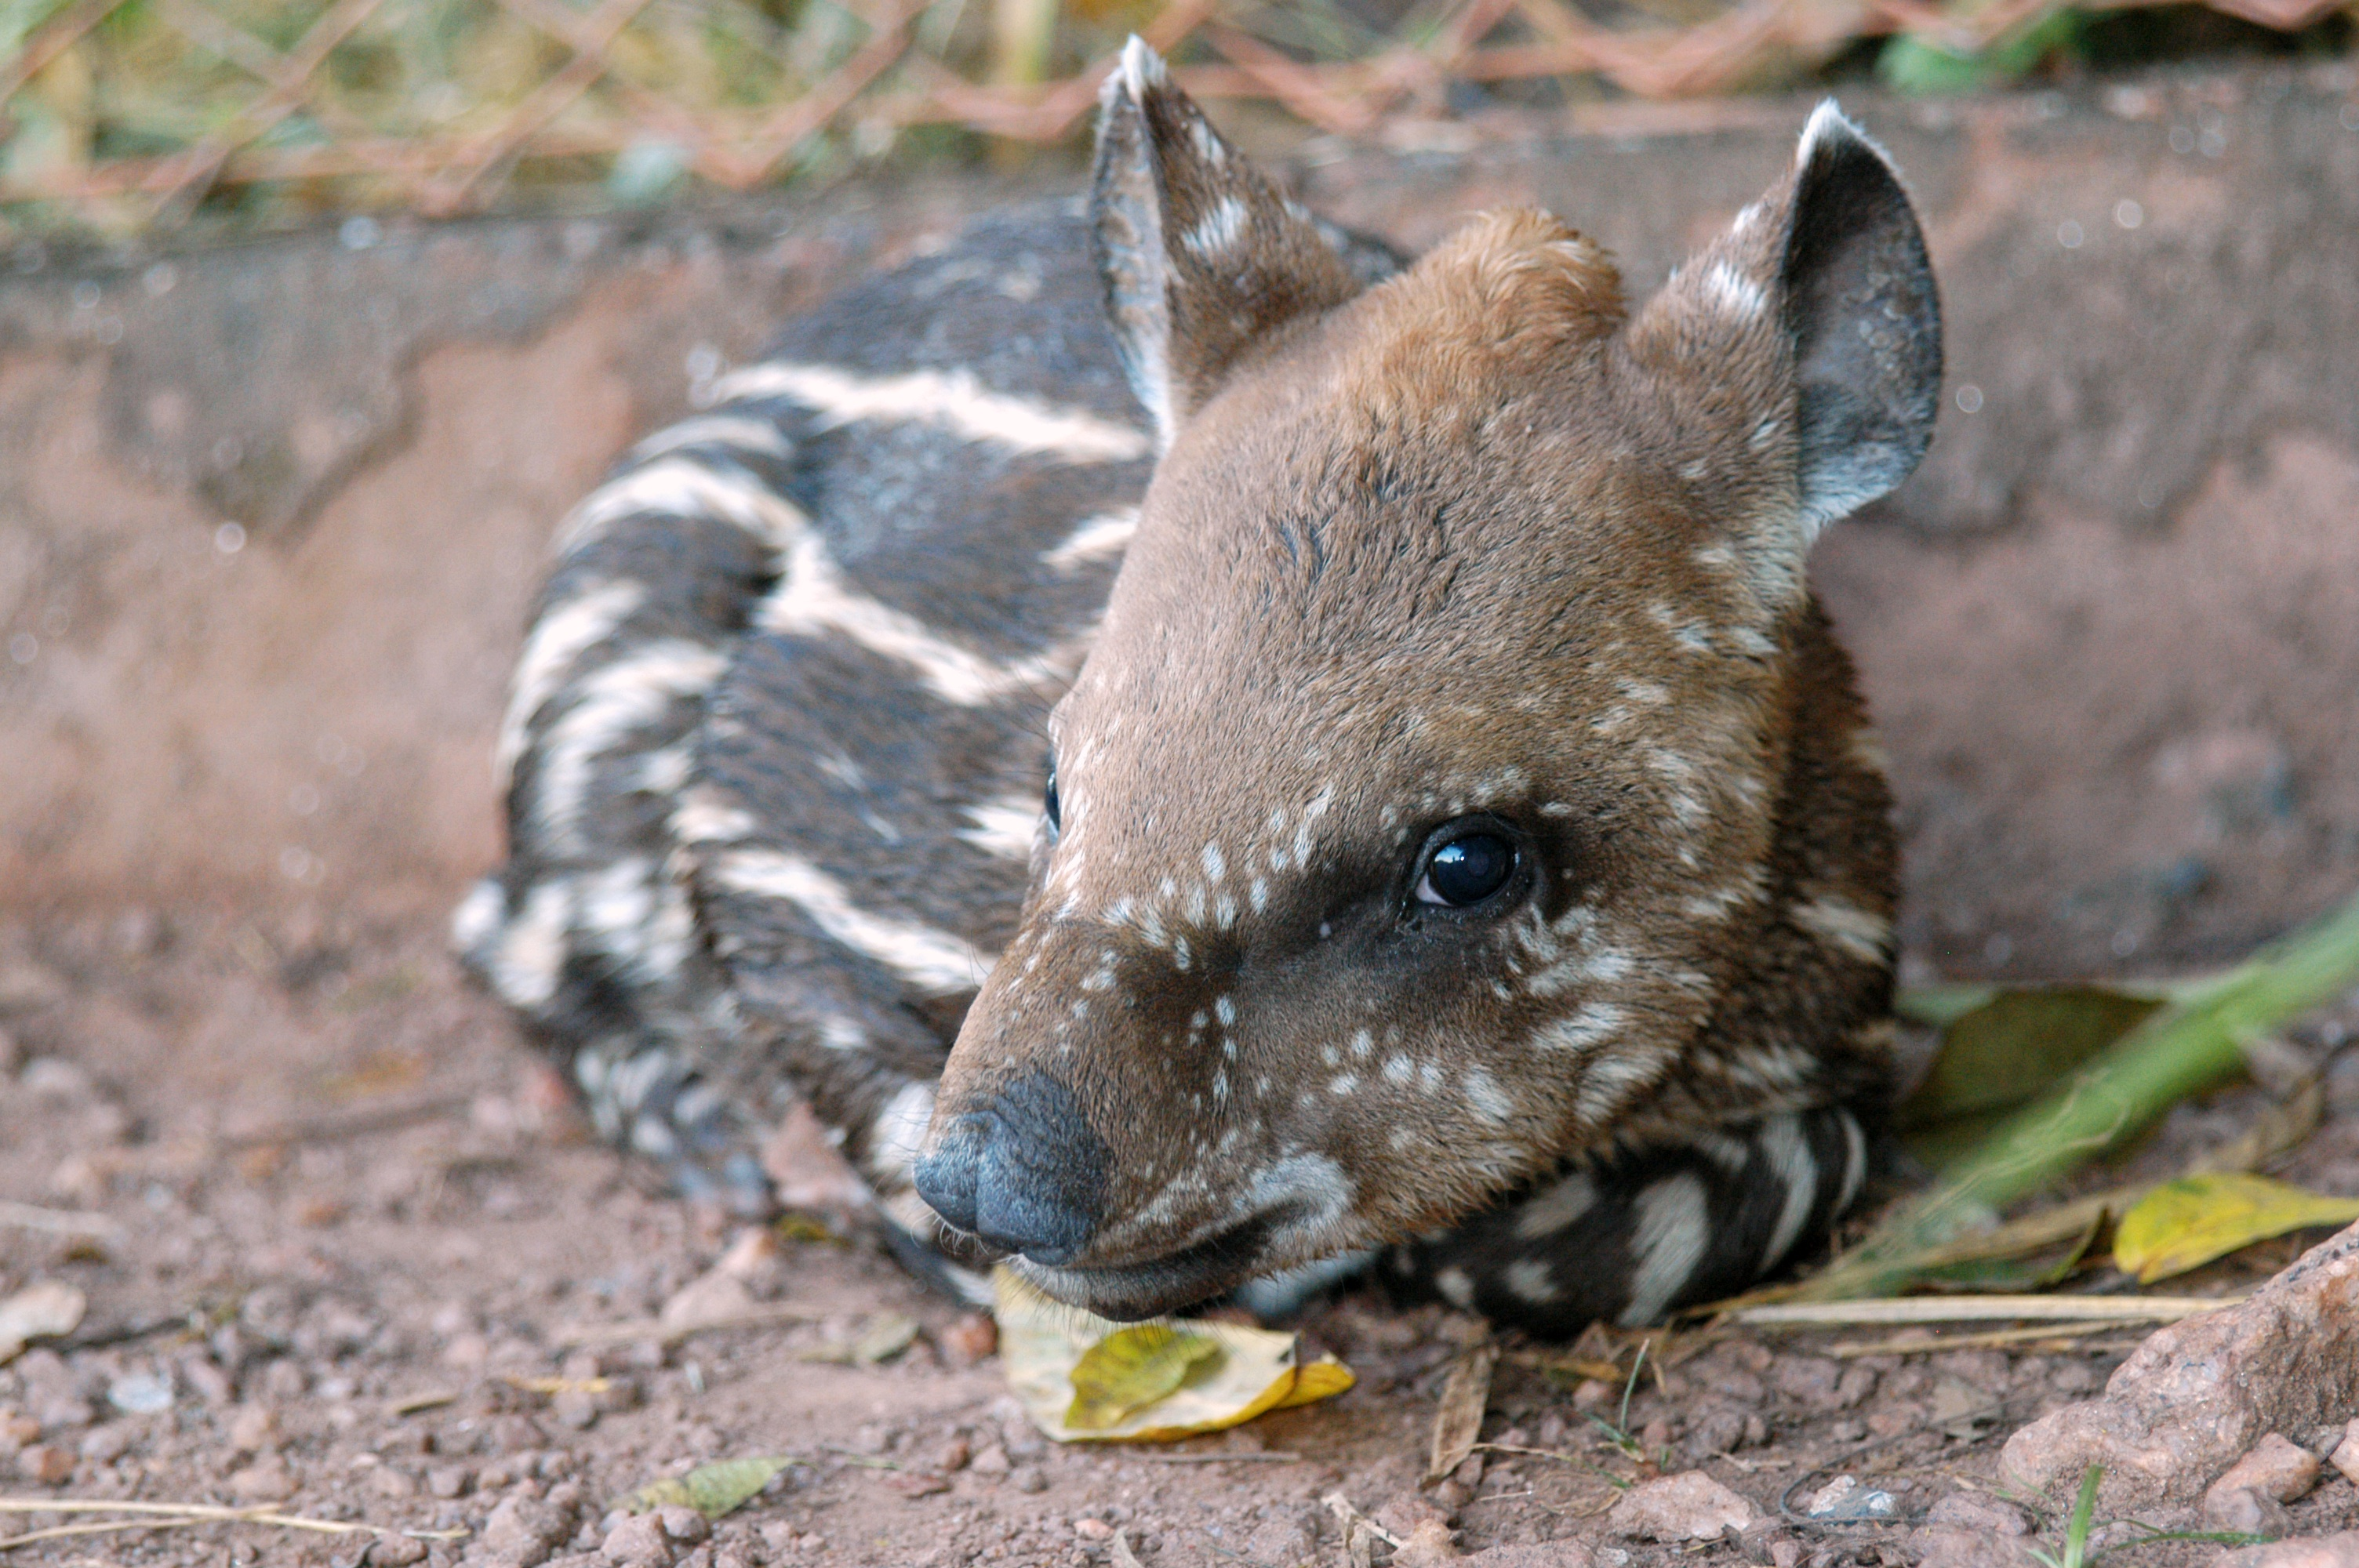 Baby tapirs' stripes and spots make them resemble a watermelon. Sadly, they lose these markings as they mature. Photo: LIana John